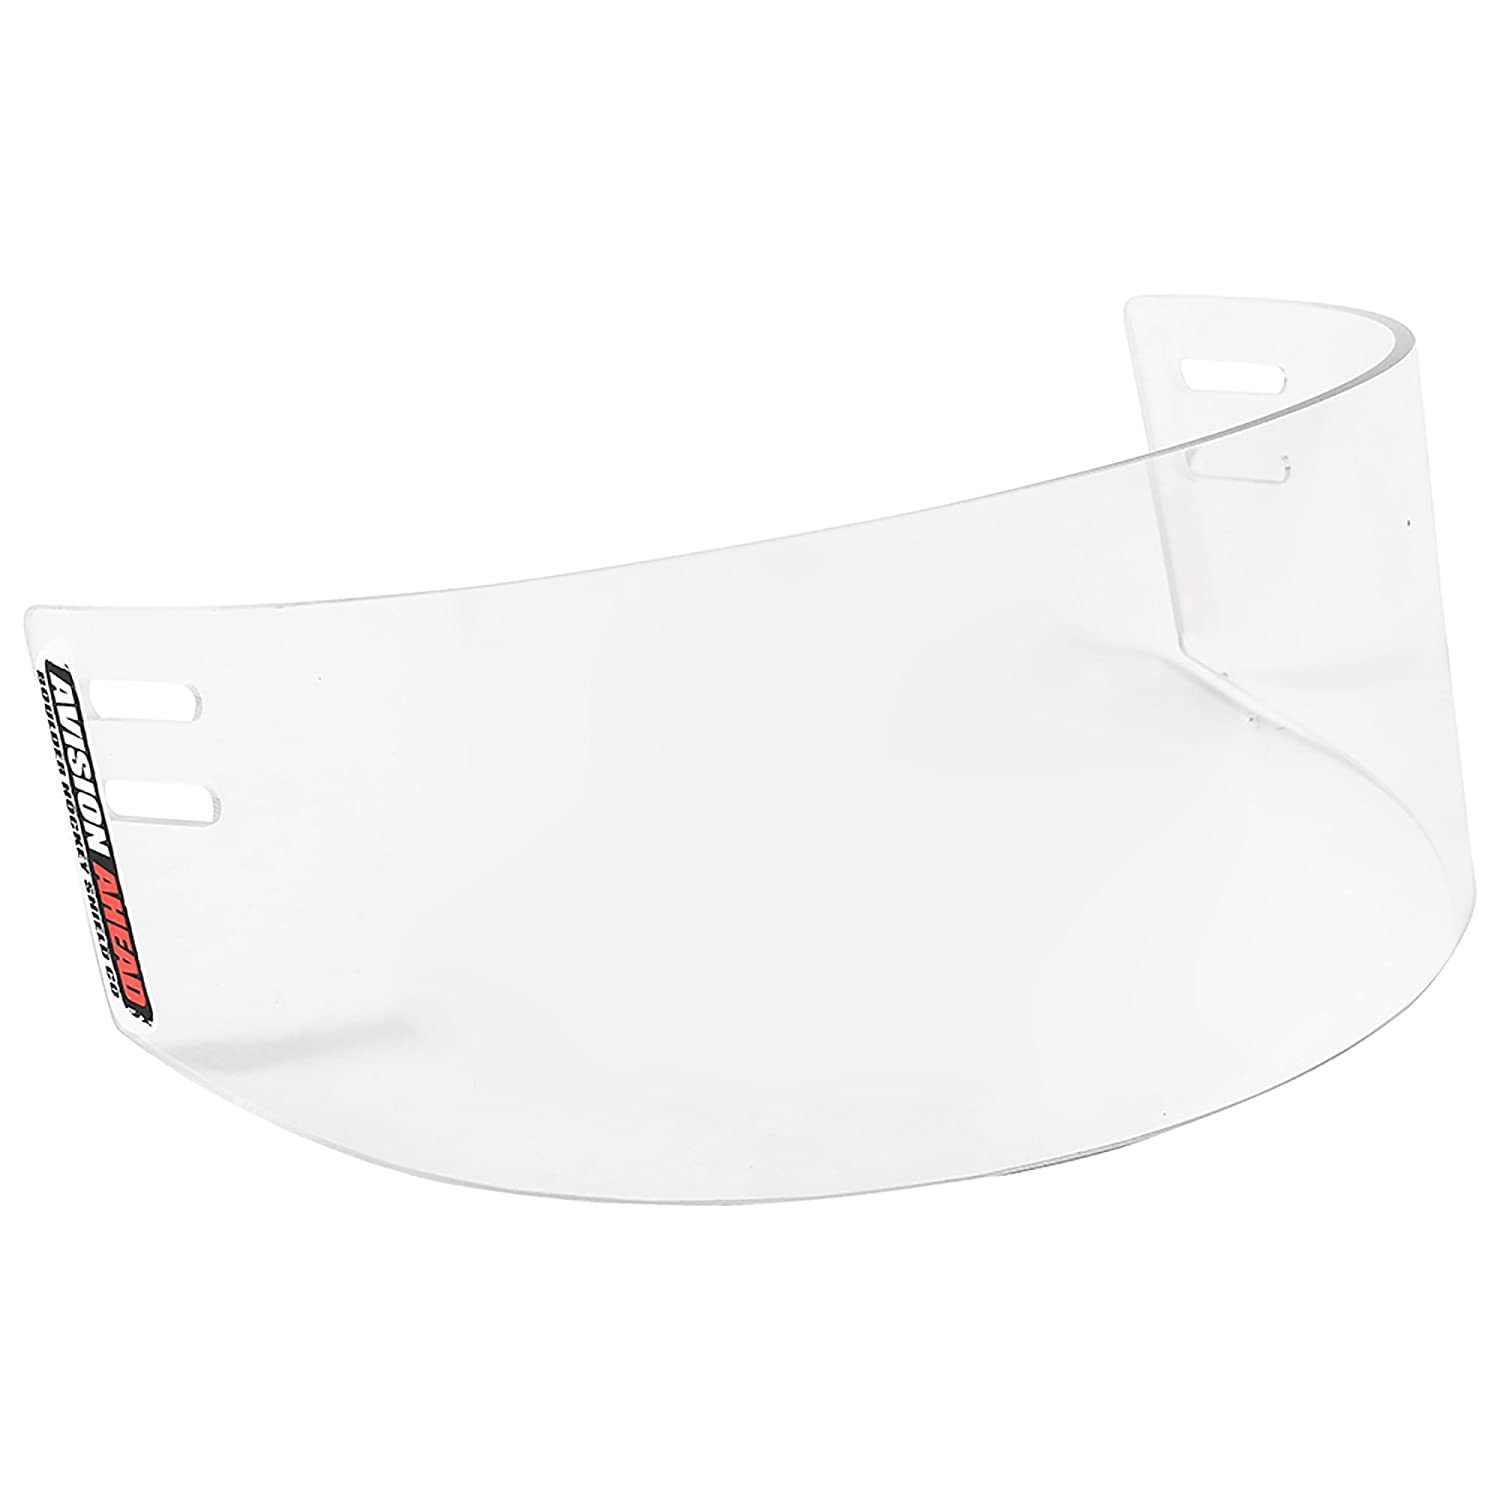 20/20 Anti-Fog and Scratch Resistant Polycarbonate Hockey Shield Visor